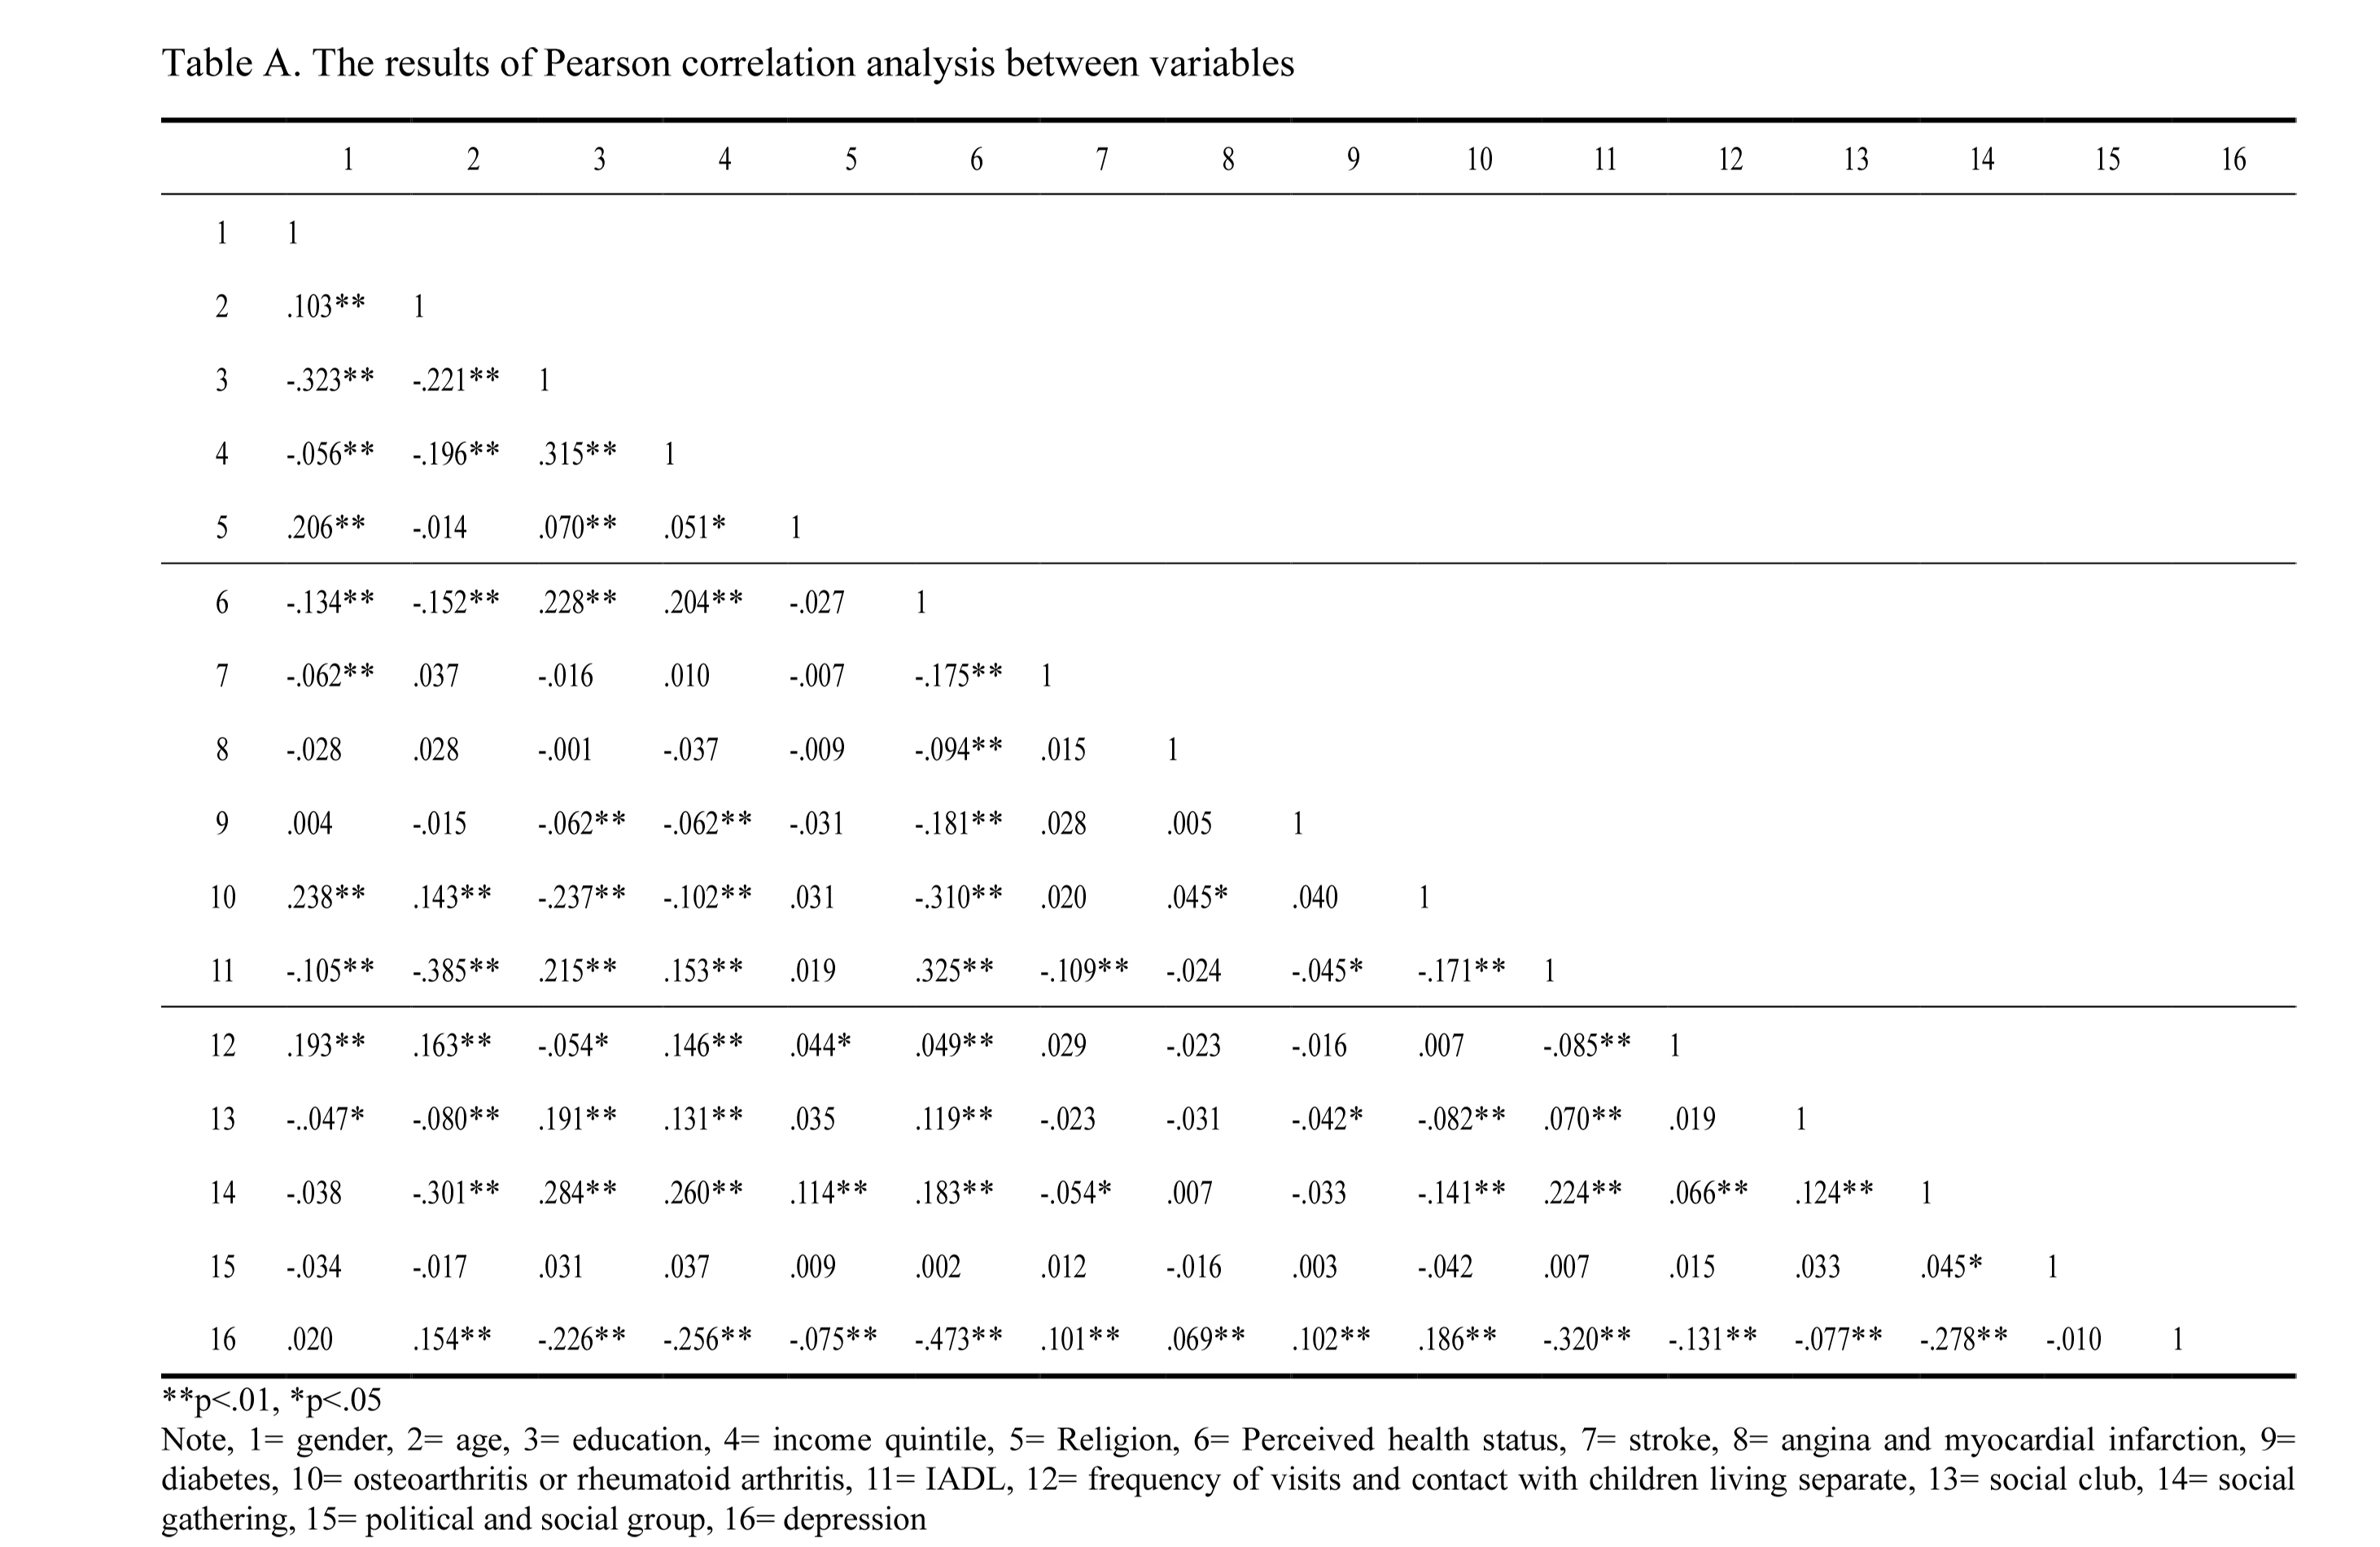 The results of Pearson correlation analysis between variables